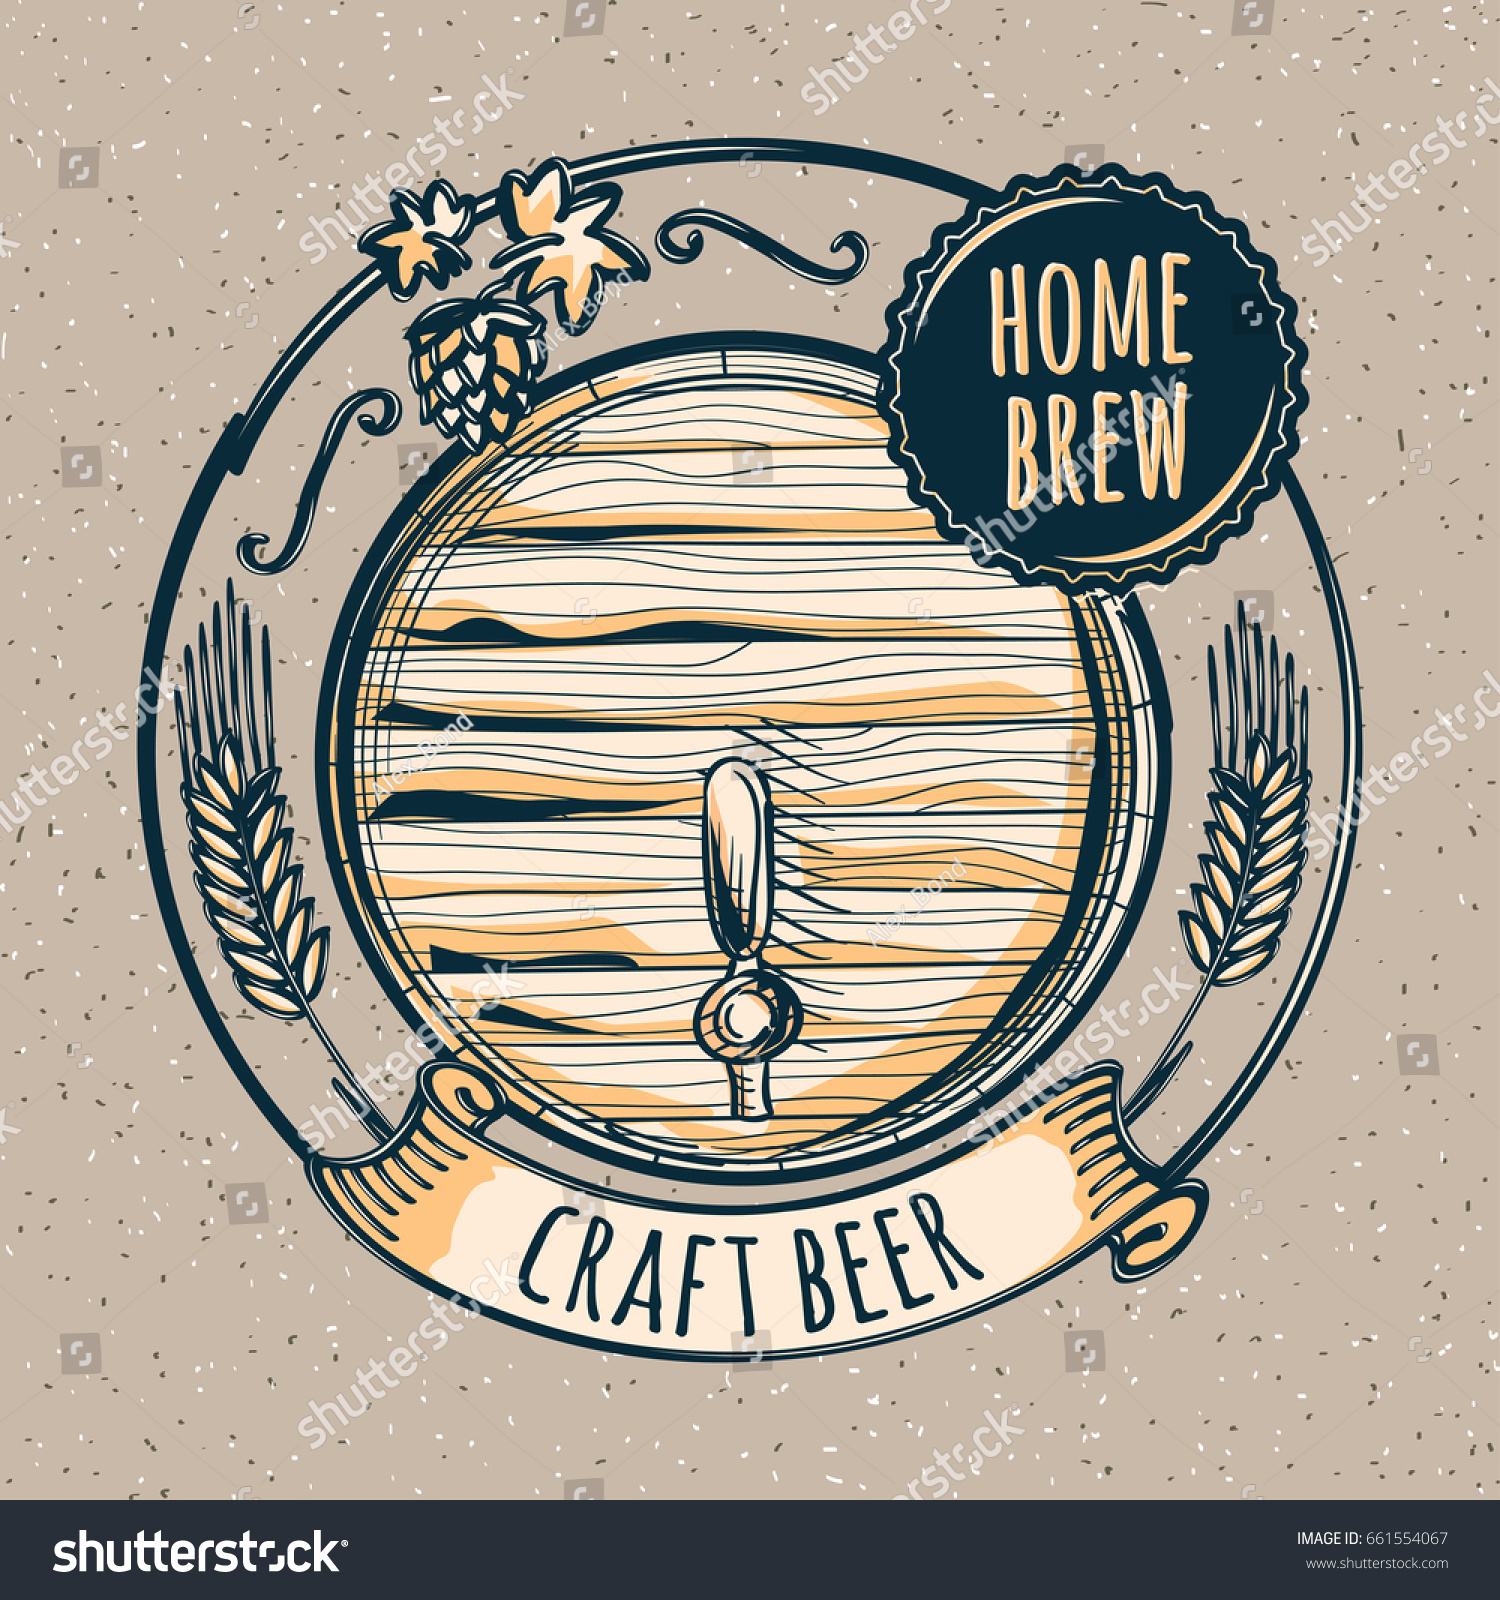 Home brew craft beer emblem stock vector 661554067 for Home brew craft beer